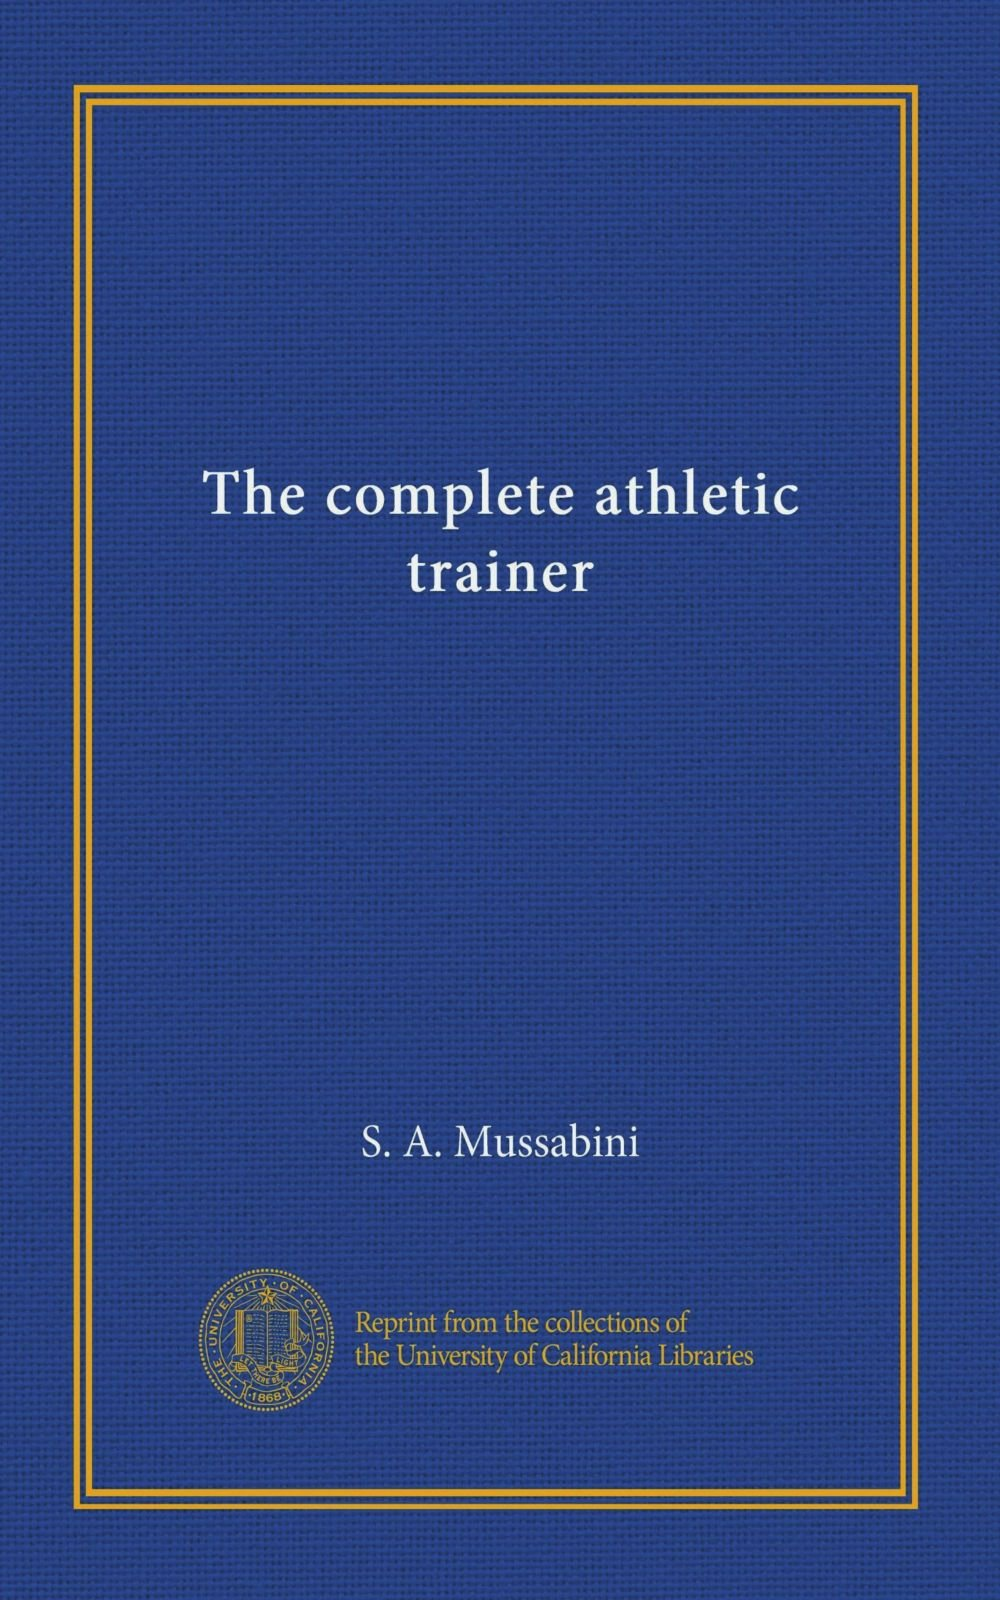 The complete athletic trainer PDF